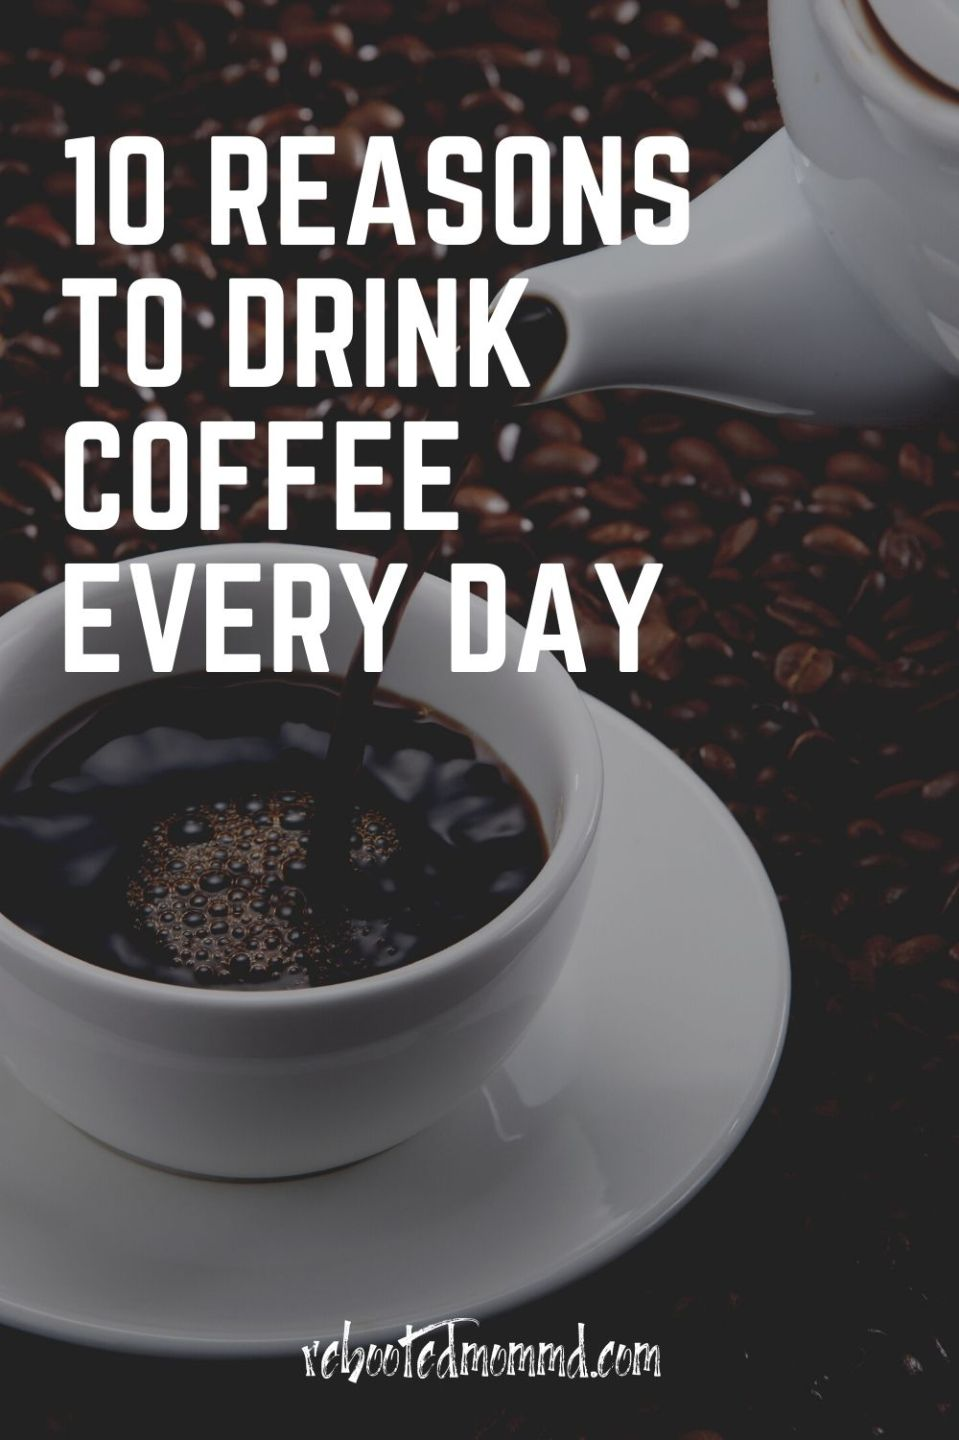 10 Reasons To Drink Coffee Every Day